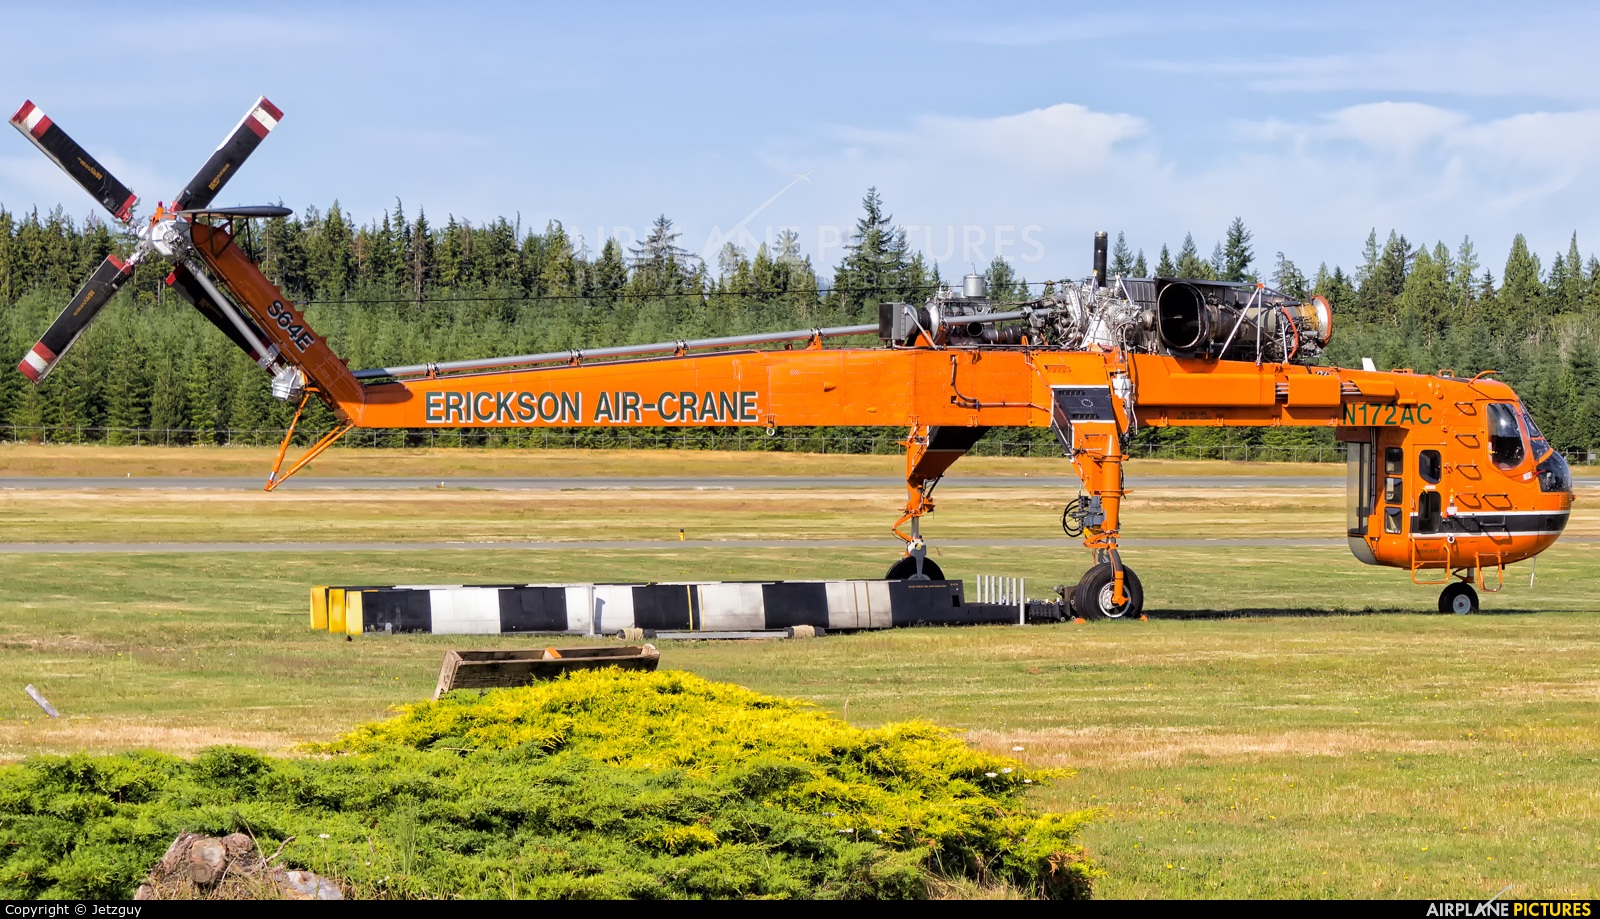 Erickson Air-Crane N172AC aircraft at Campbell River Airport